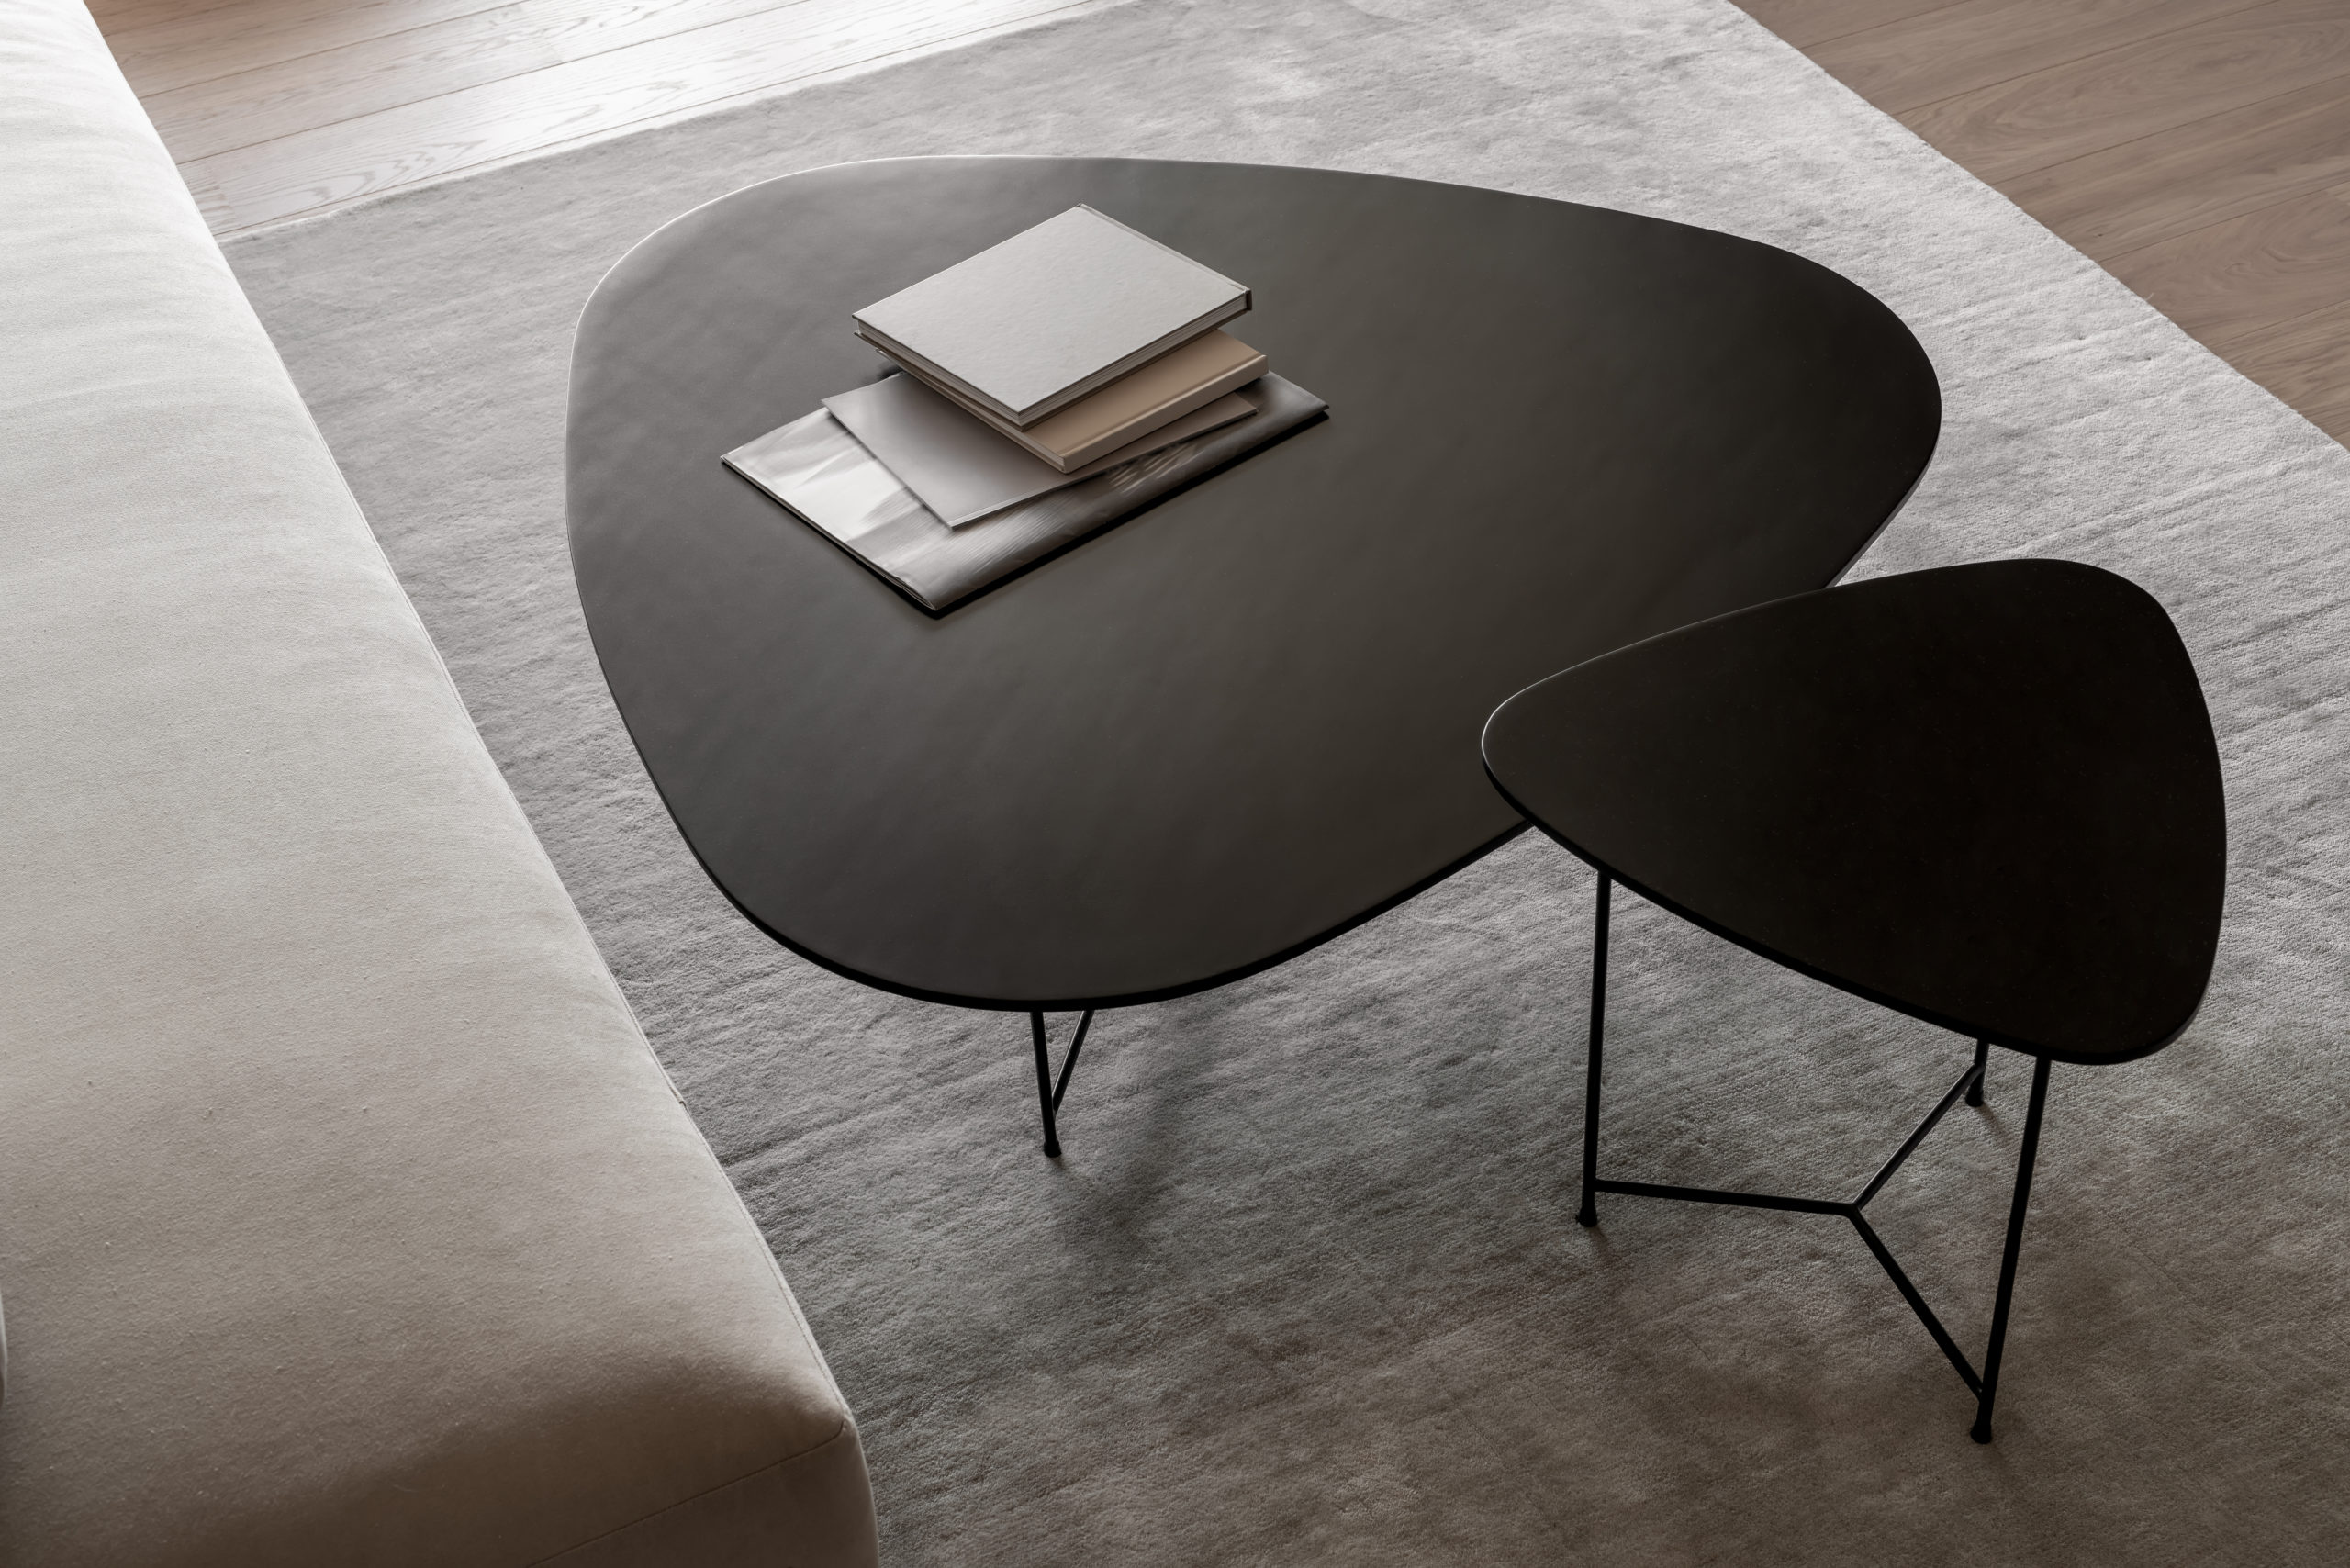 Metal black tables with books in modern interior